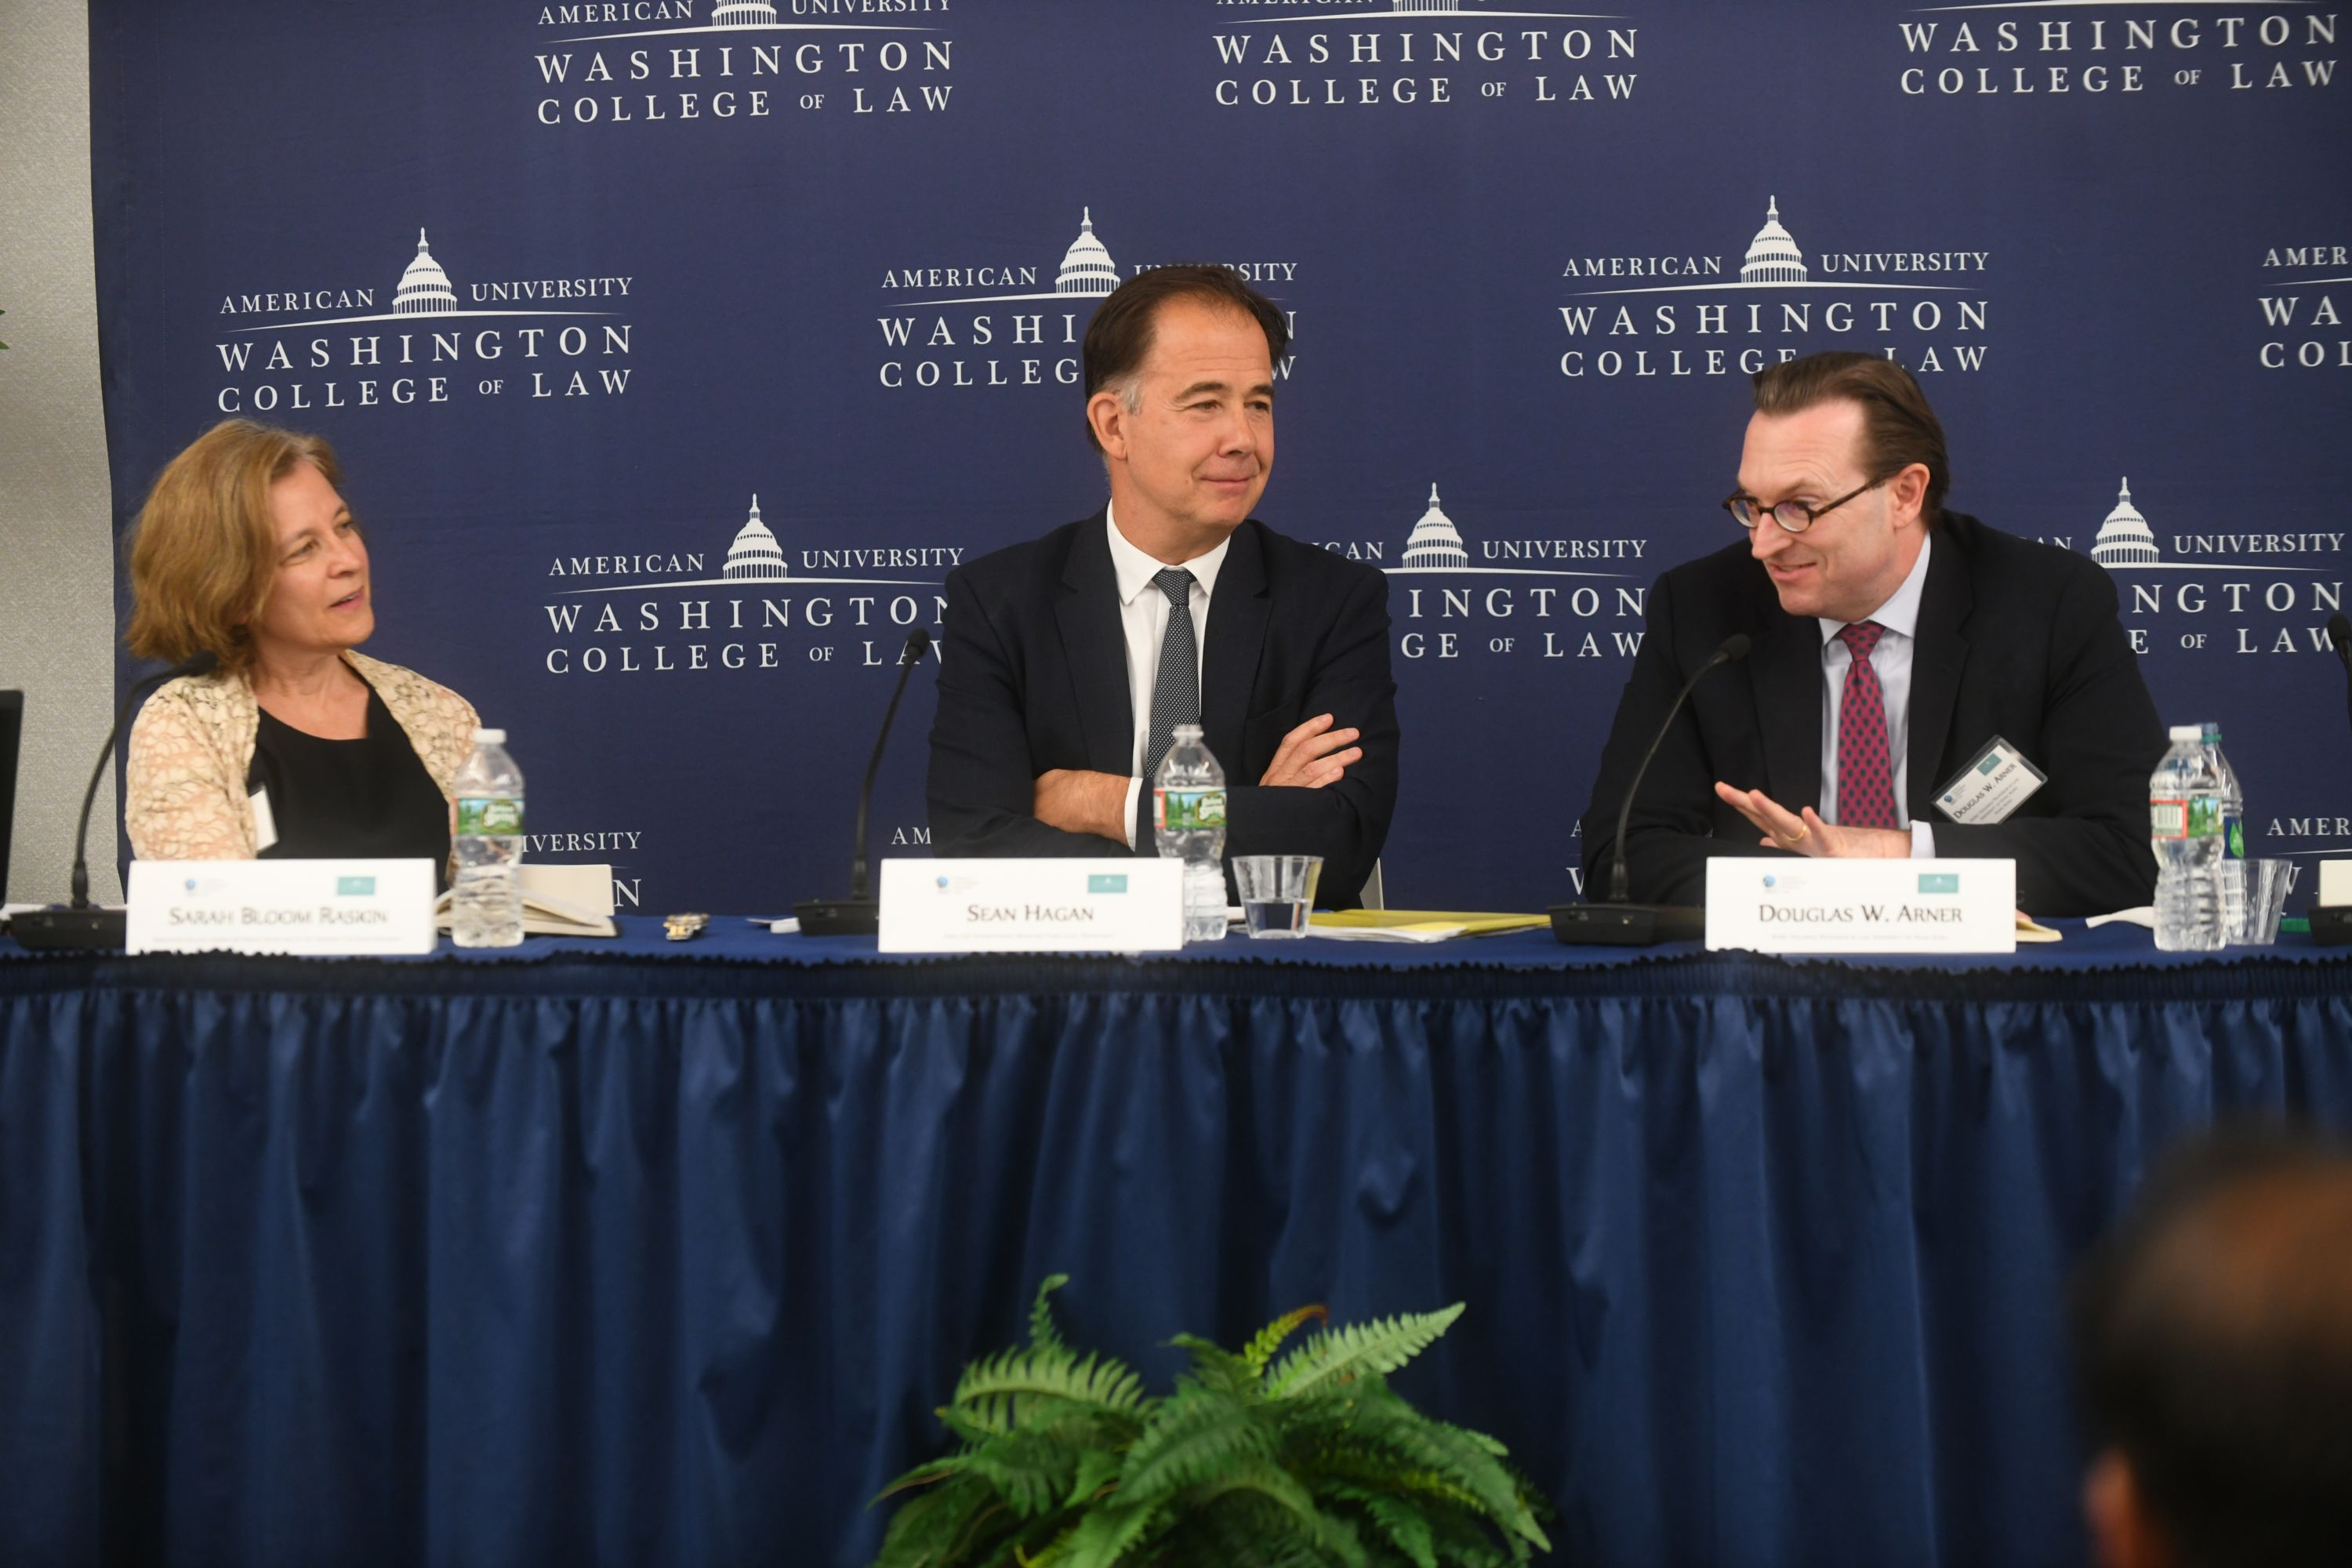 "Panel on ""Financial Policy and Practice in Unsettling Time"". Left to right: Sarah B. Raskin, former United States Deputy Secretary of the Treasury, Sean Hagan, Director of the International Monetary Fund Legal Department, and Douglas W. Arner, Kerry Holdings Professor in Law, University of Hong Kong."